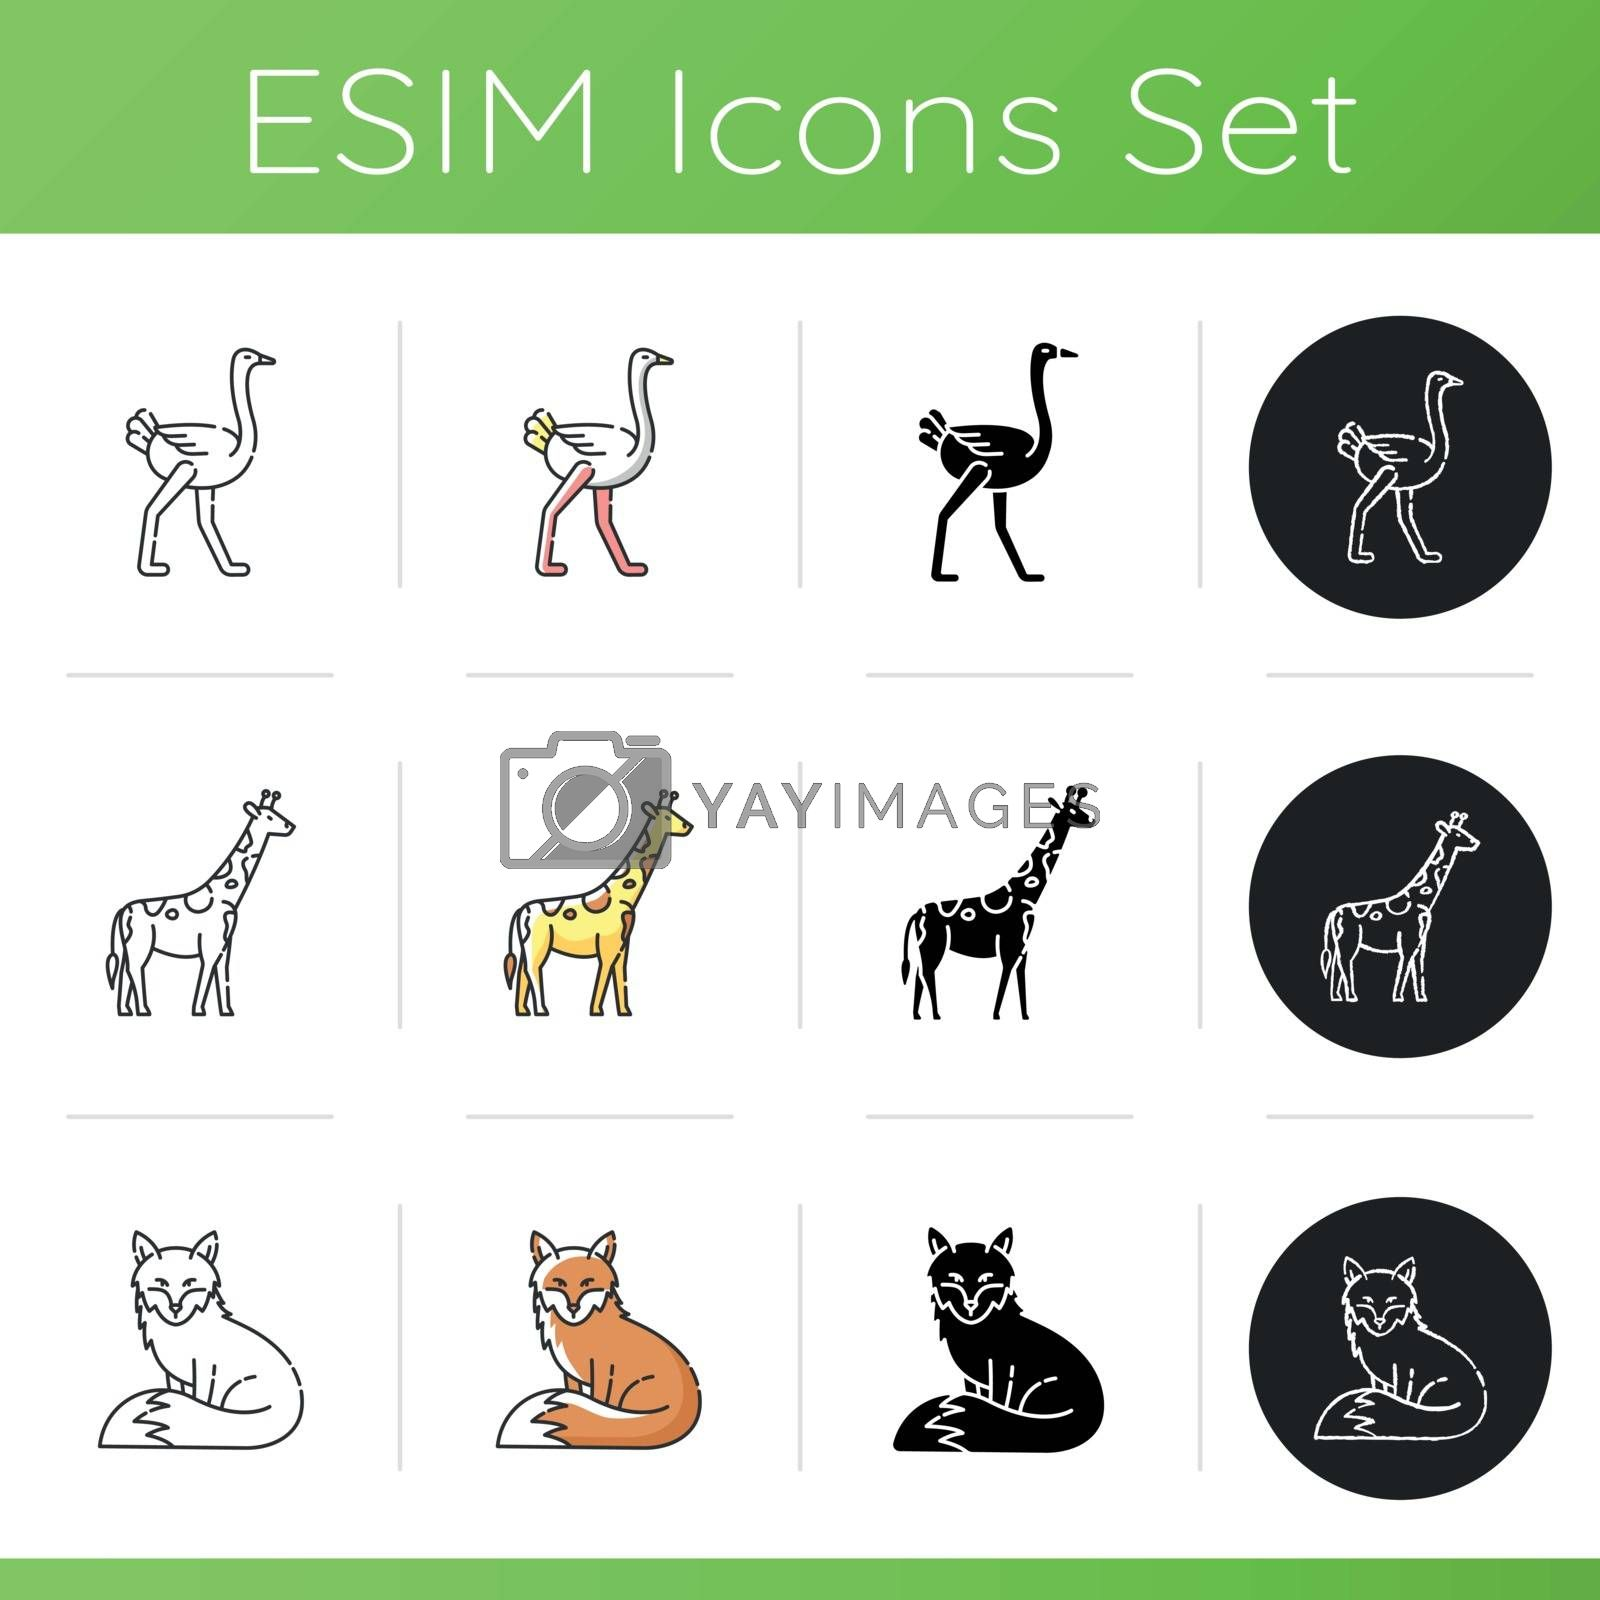 Common and exotic animals icons set. Linear, black and RGB color styles. African giraffe, ostrich and adorable fox. Tropical zoo inhabitants amd forest wildlife. Isolated vector illustrations